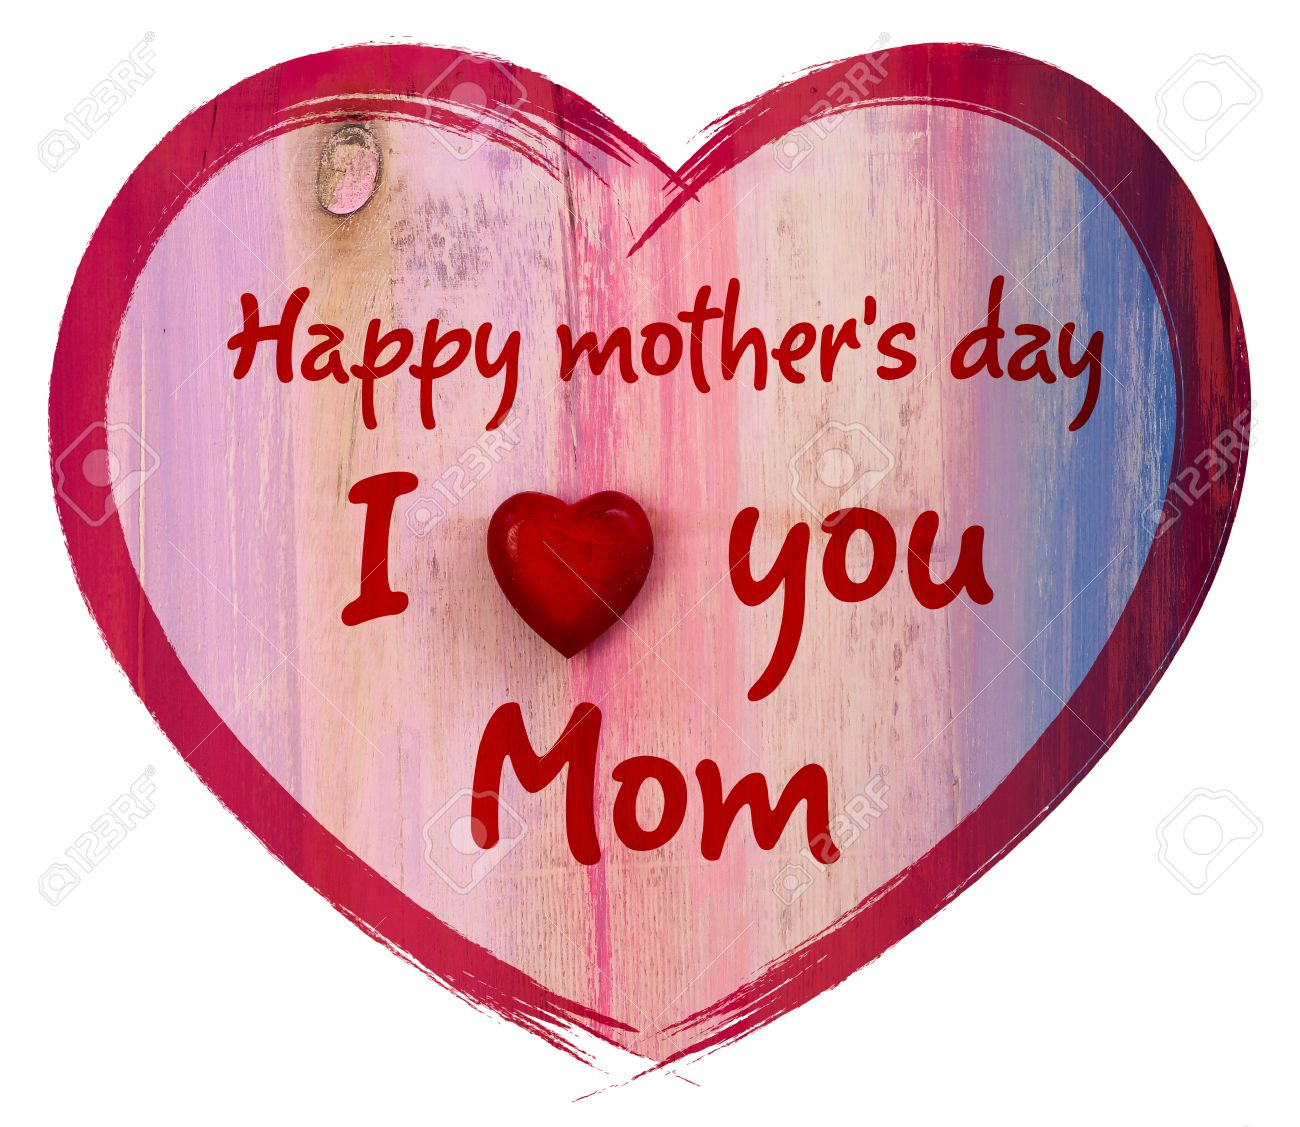 heart shape with i love you mom and happy mothers day message